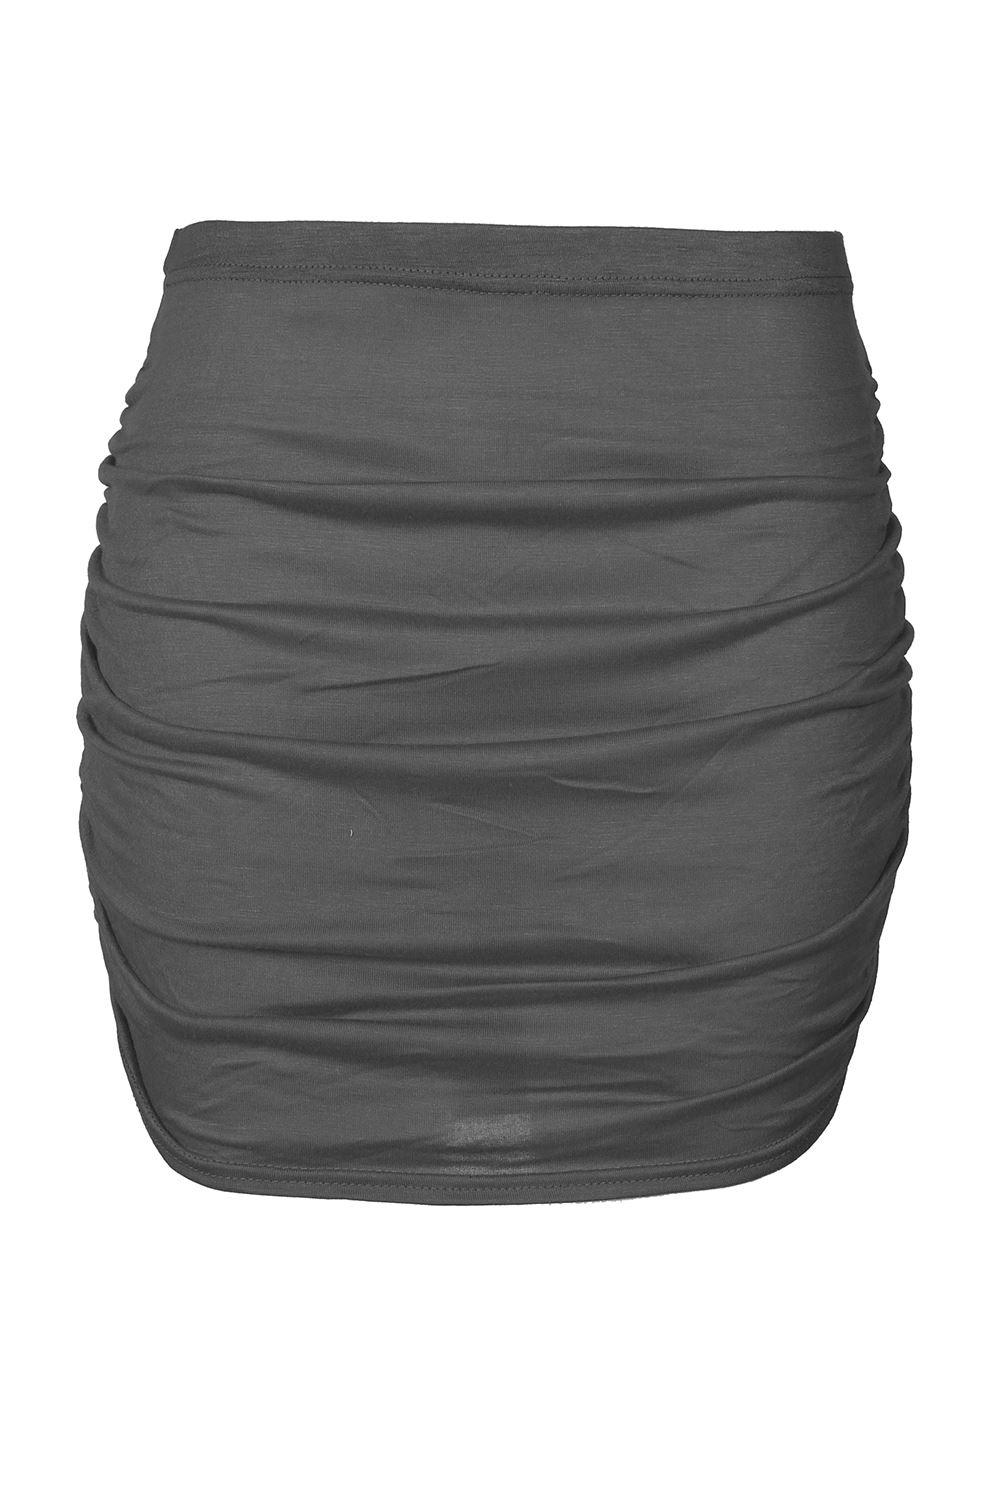 Womens Side Ruched Mini Skirt Ladies Plain Stretchy Side Ruched Gathered Skirt